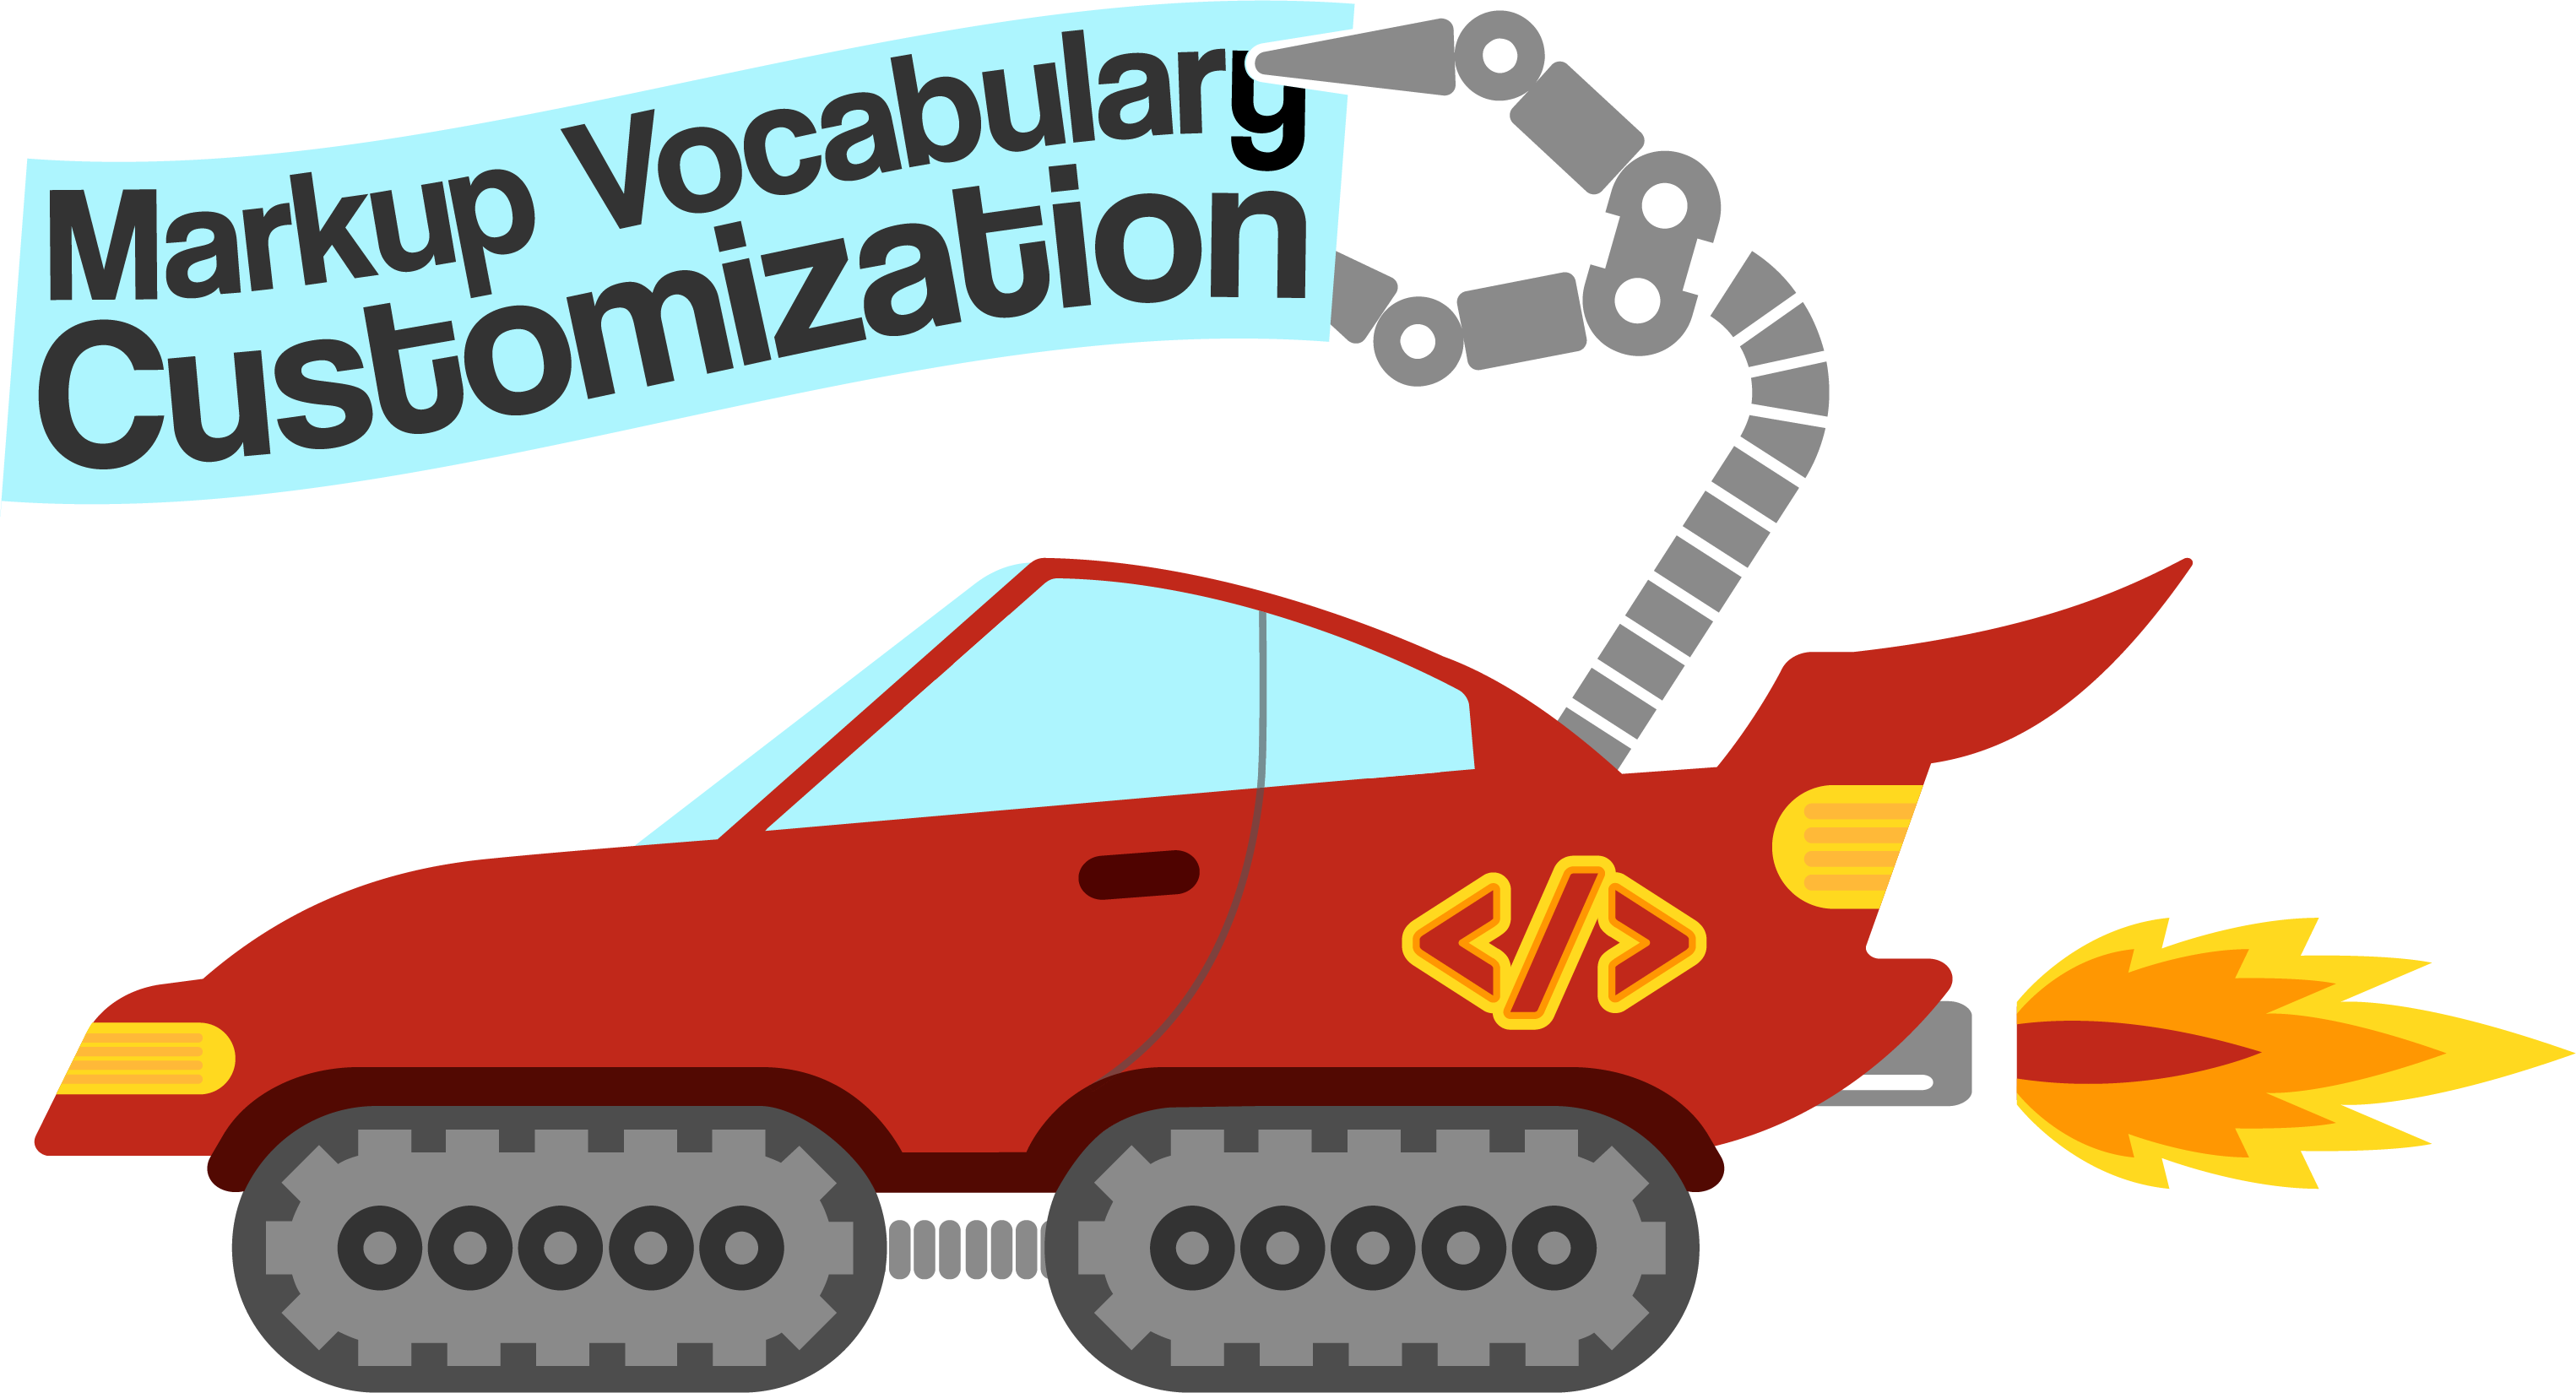 Symposium on Markup Vocabulary Customization